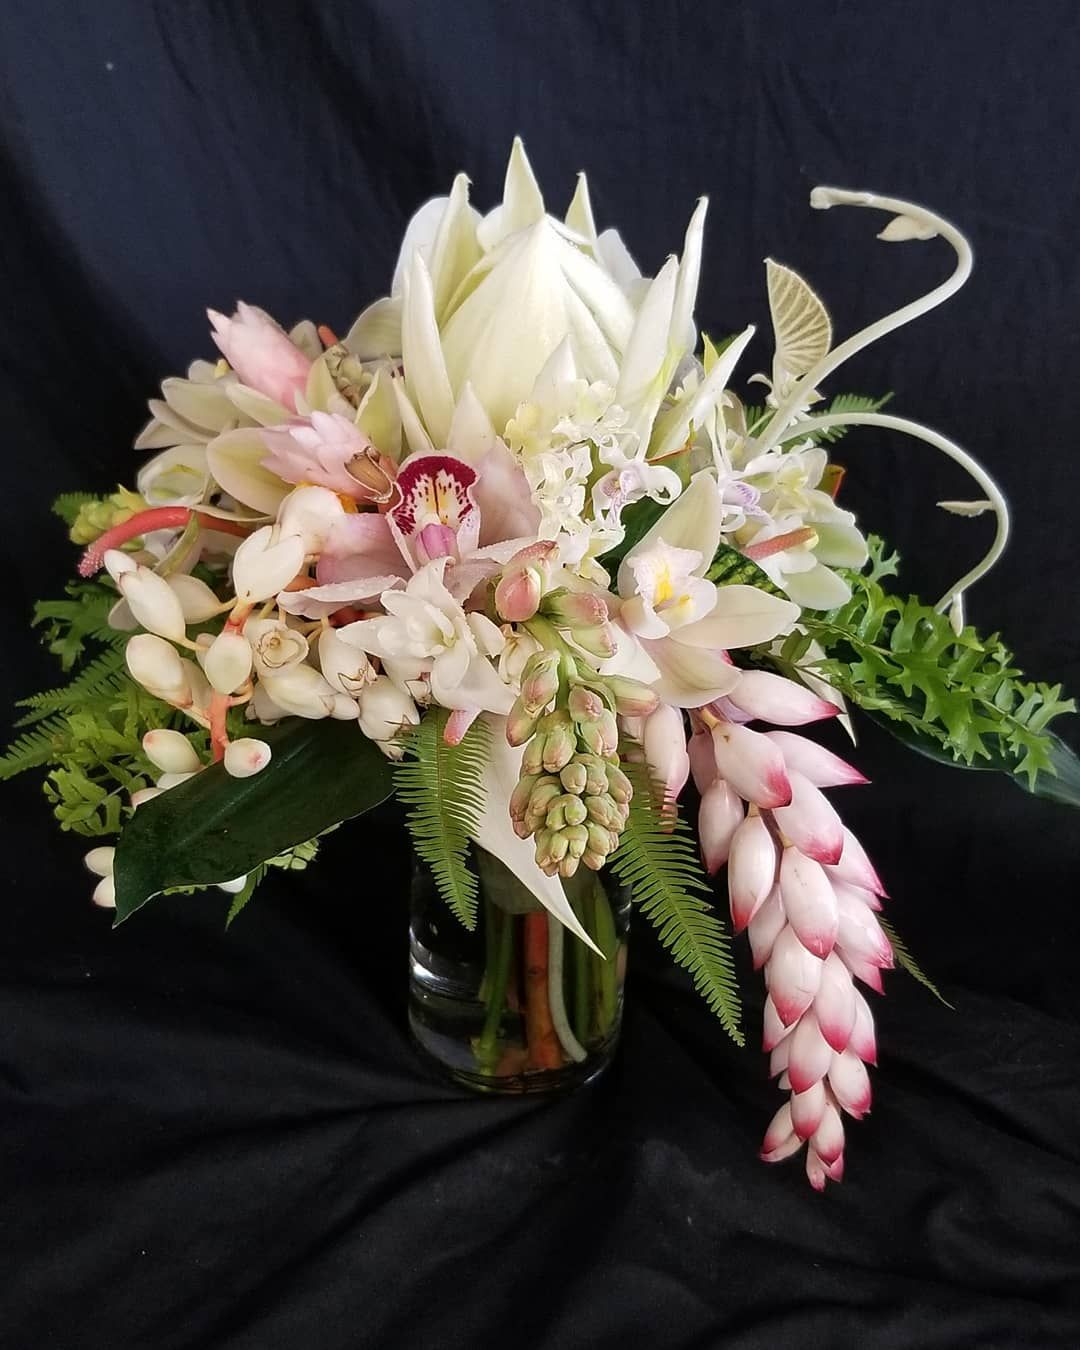 This Bouquet Was Such A Joy To Desgin It Includes A Rare White King Protea Two Types Of Shell Ginger Flowers Two T Pink Ginger Ginger Flower Wedding Flowers